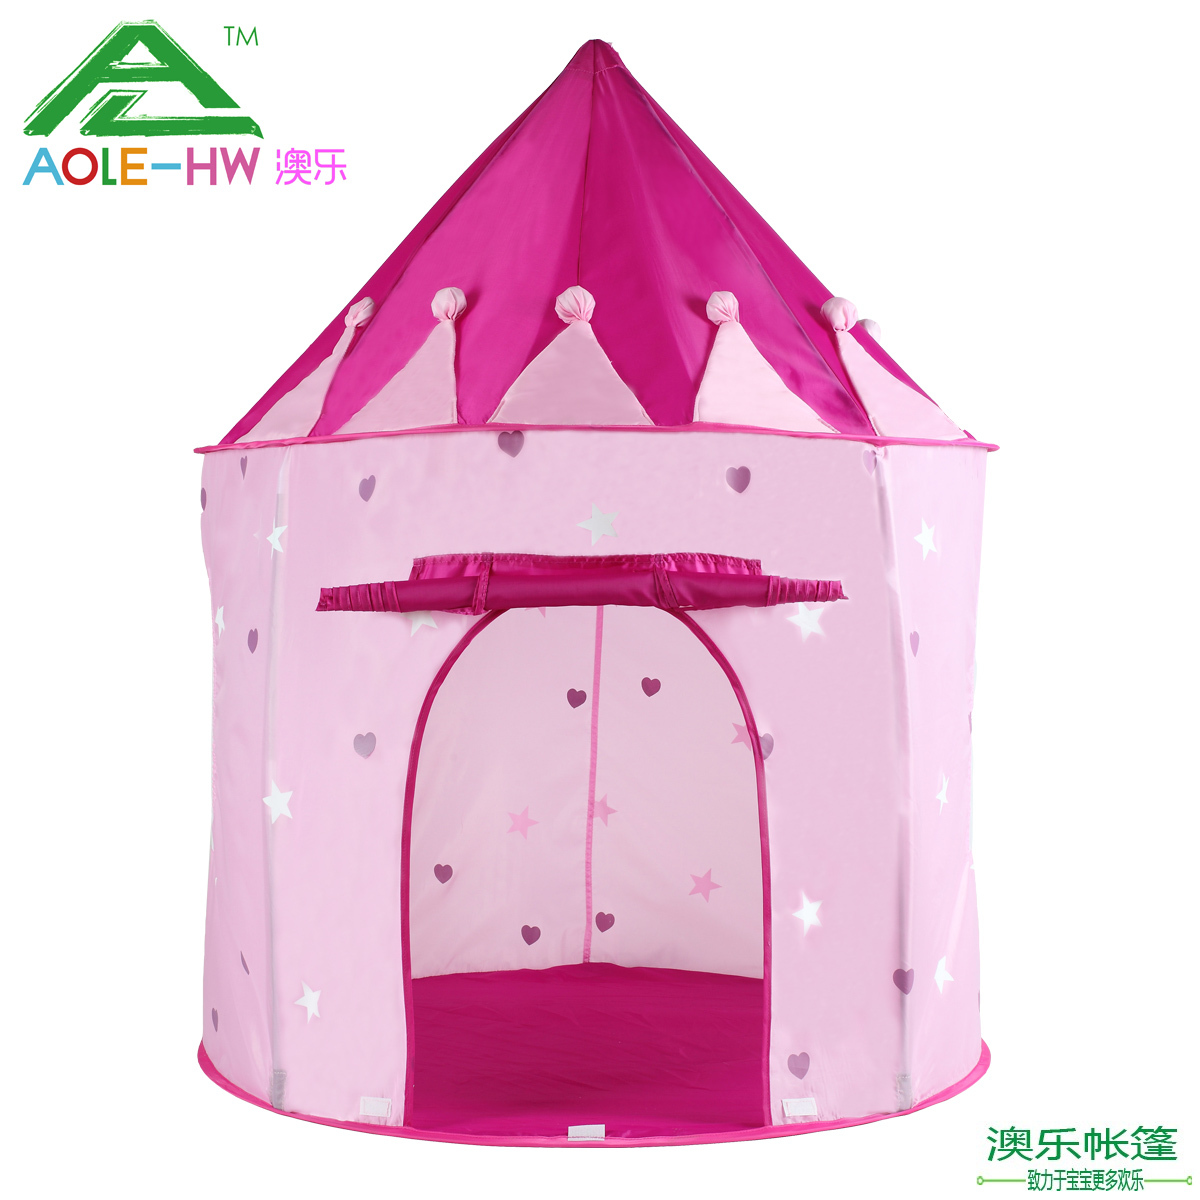 toy for children Child tent baby toy oversized game house 1 - 2 - 3(China (Mainland))